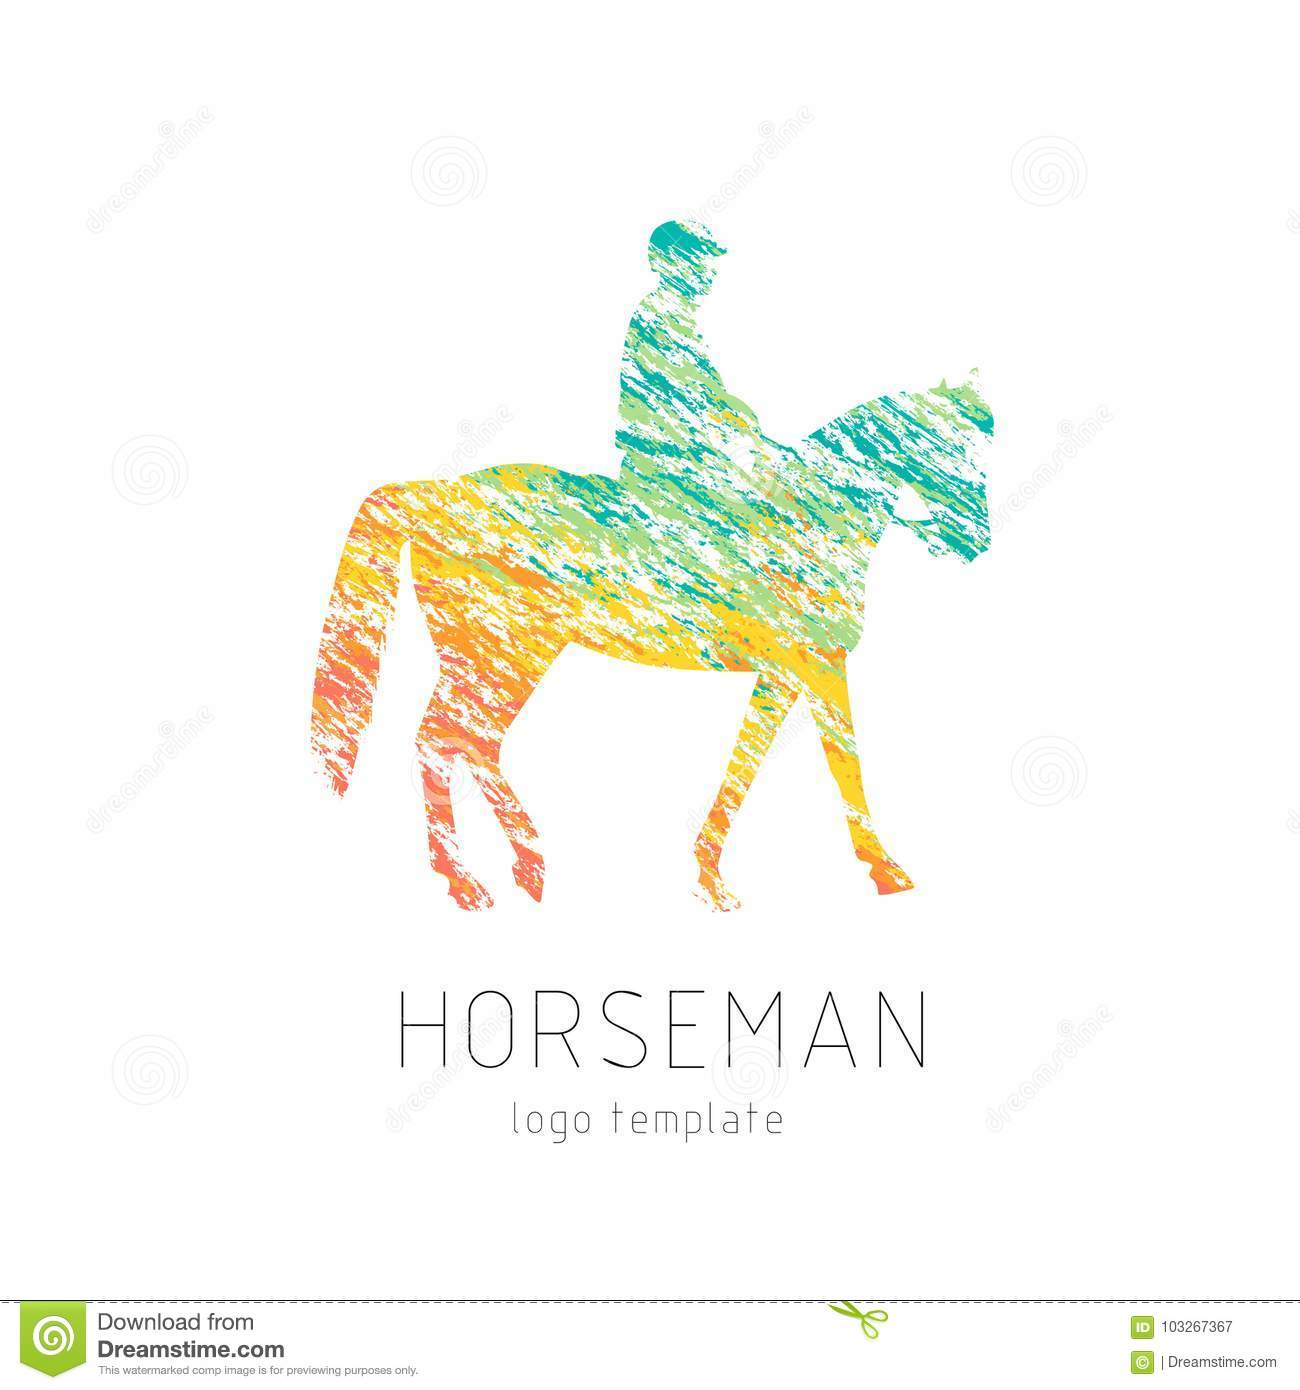 hight resolution of horseman on sports horse silhouette logo design template logotype emblem icon creative colorful brush